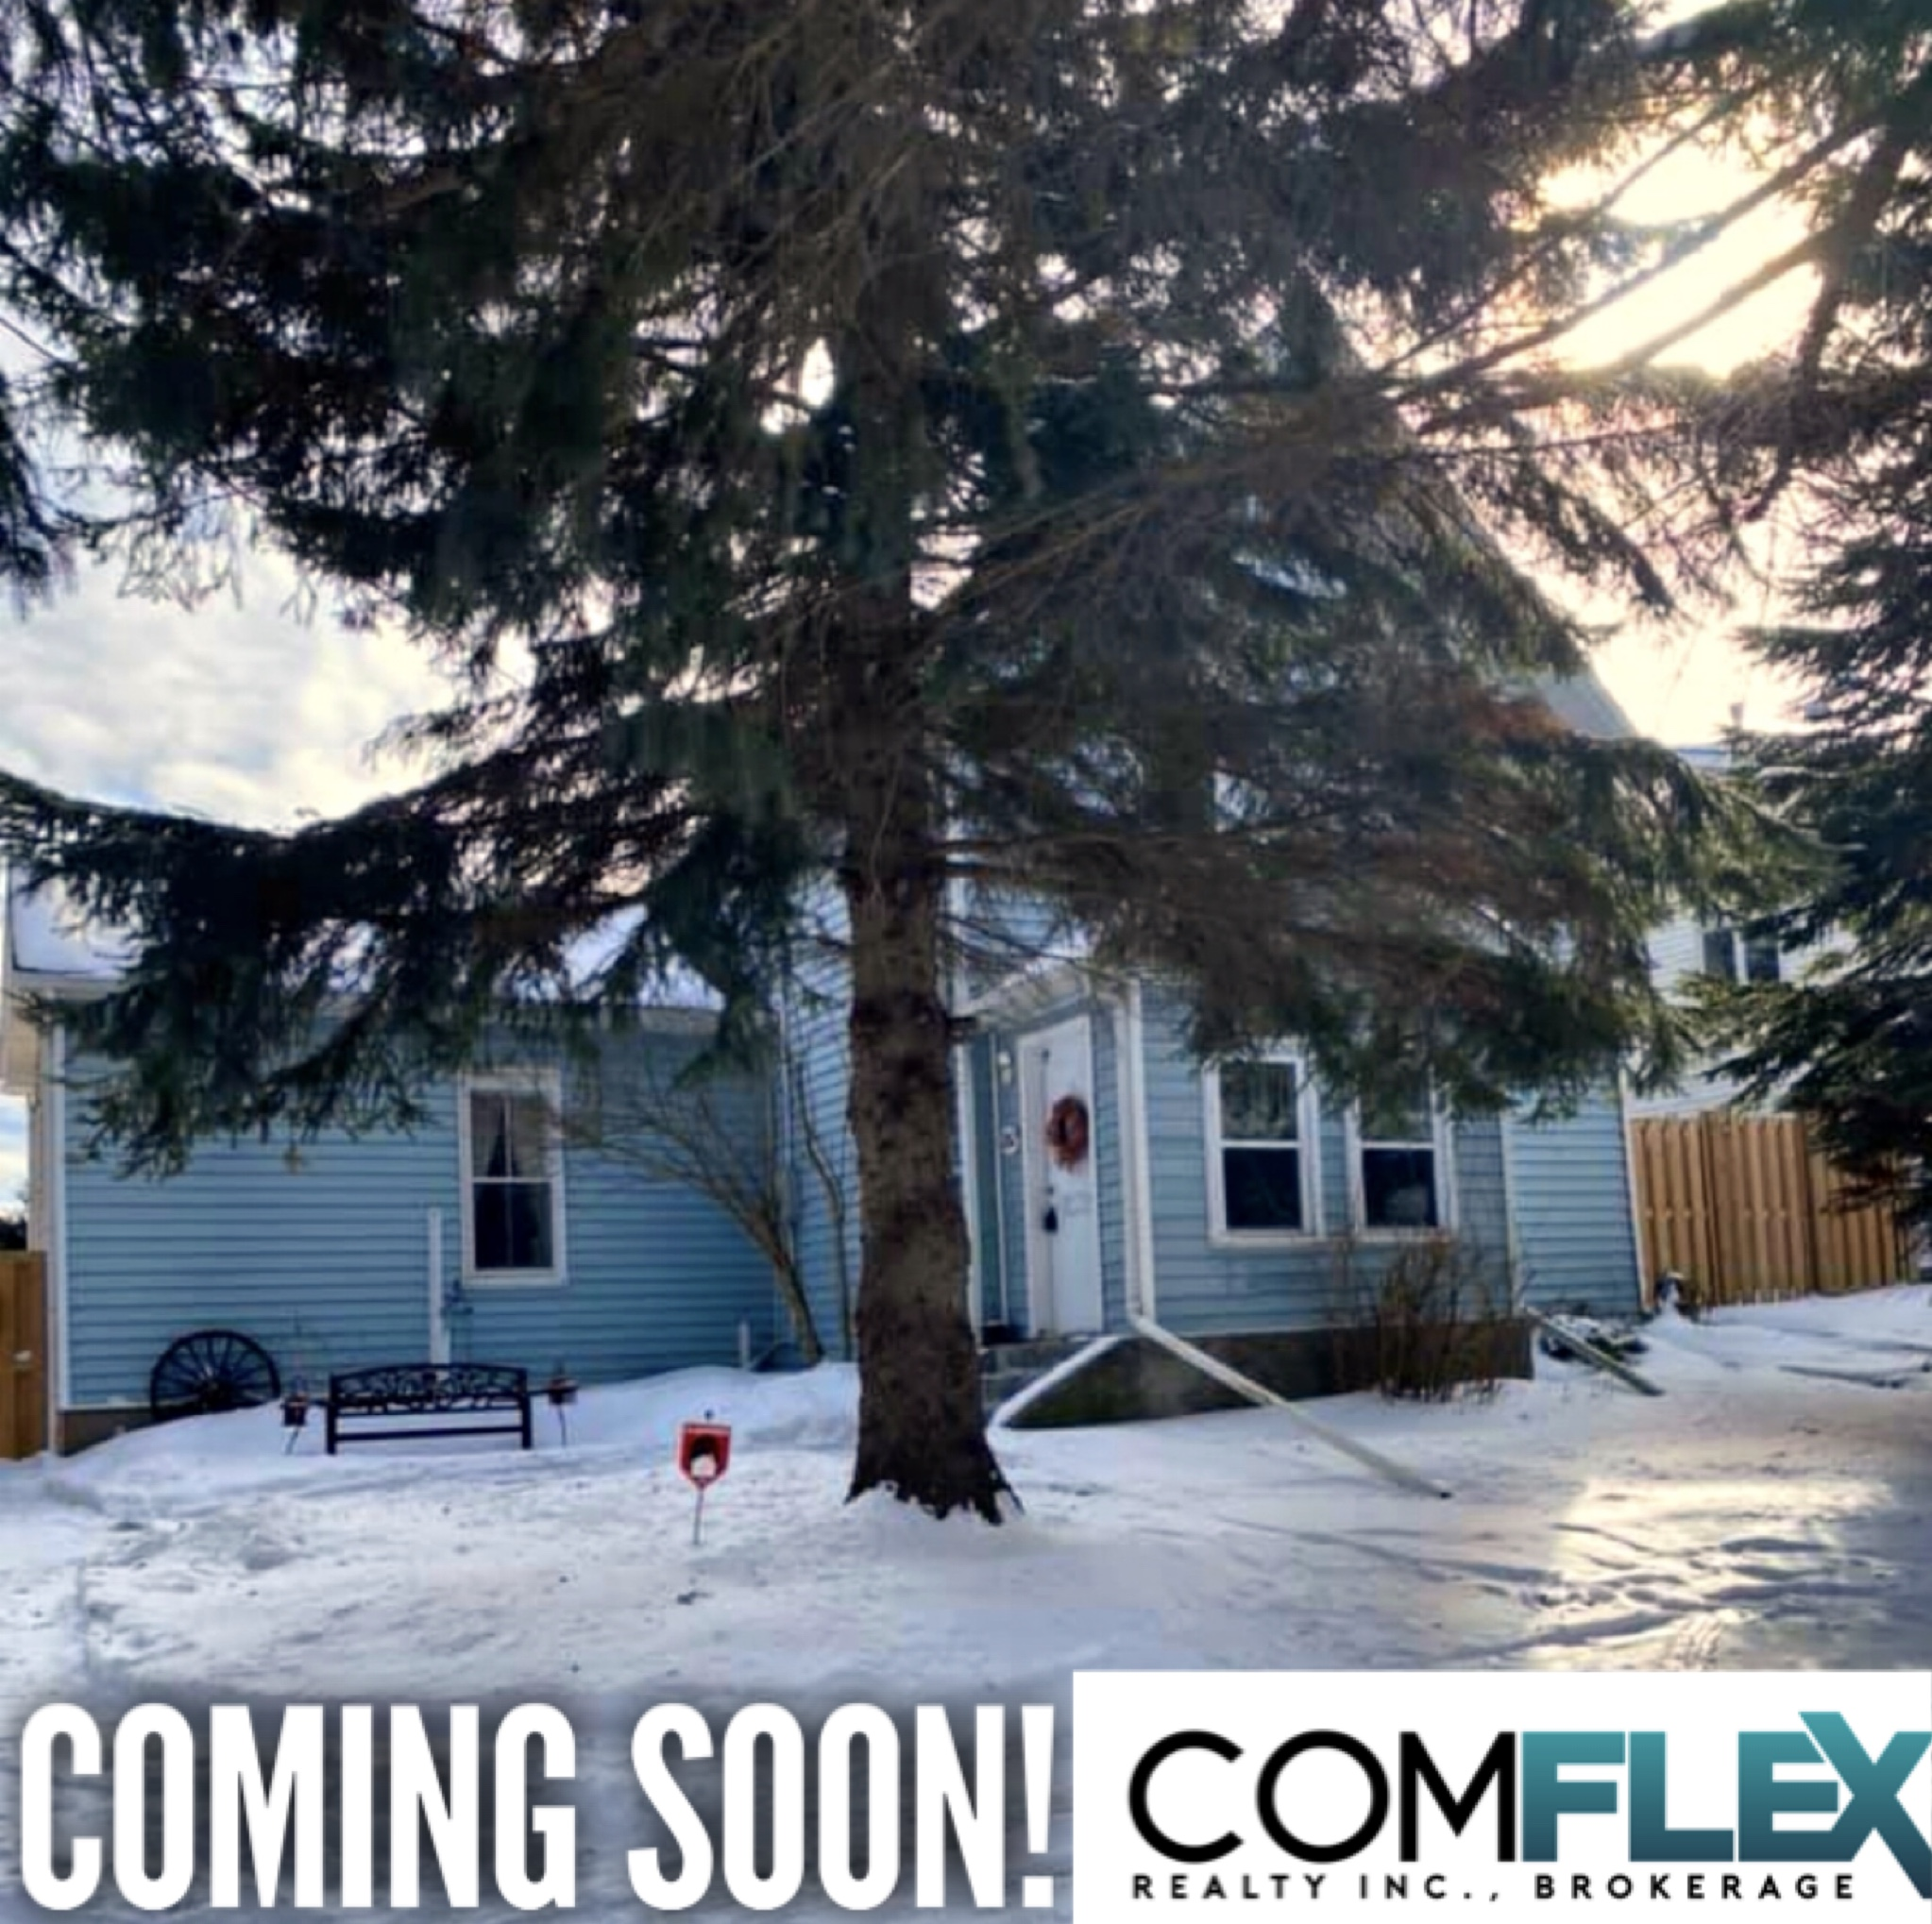 COMING SOON TO UXBRIDGE! THESE CLIENTS ARE READY TO SAVE MORE!